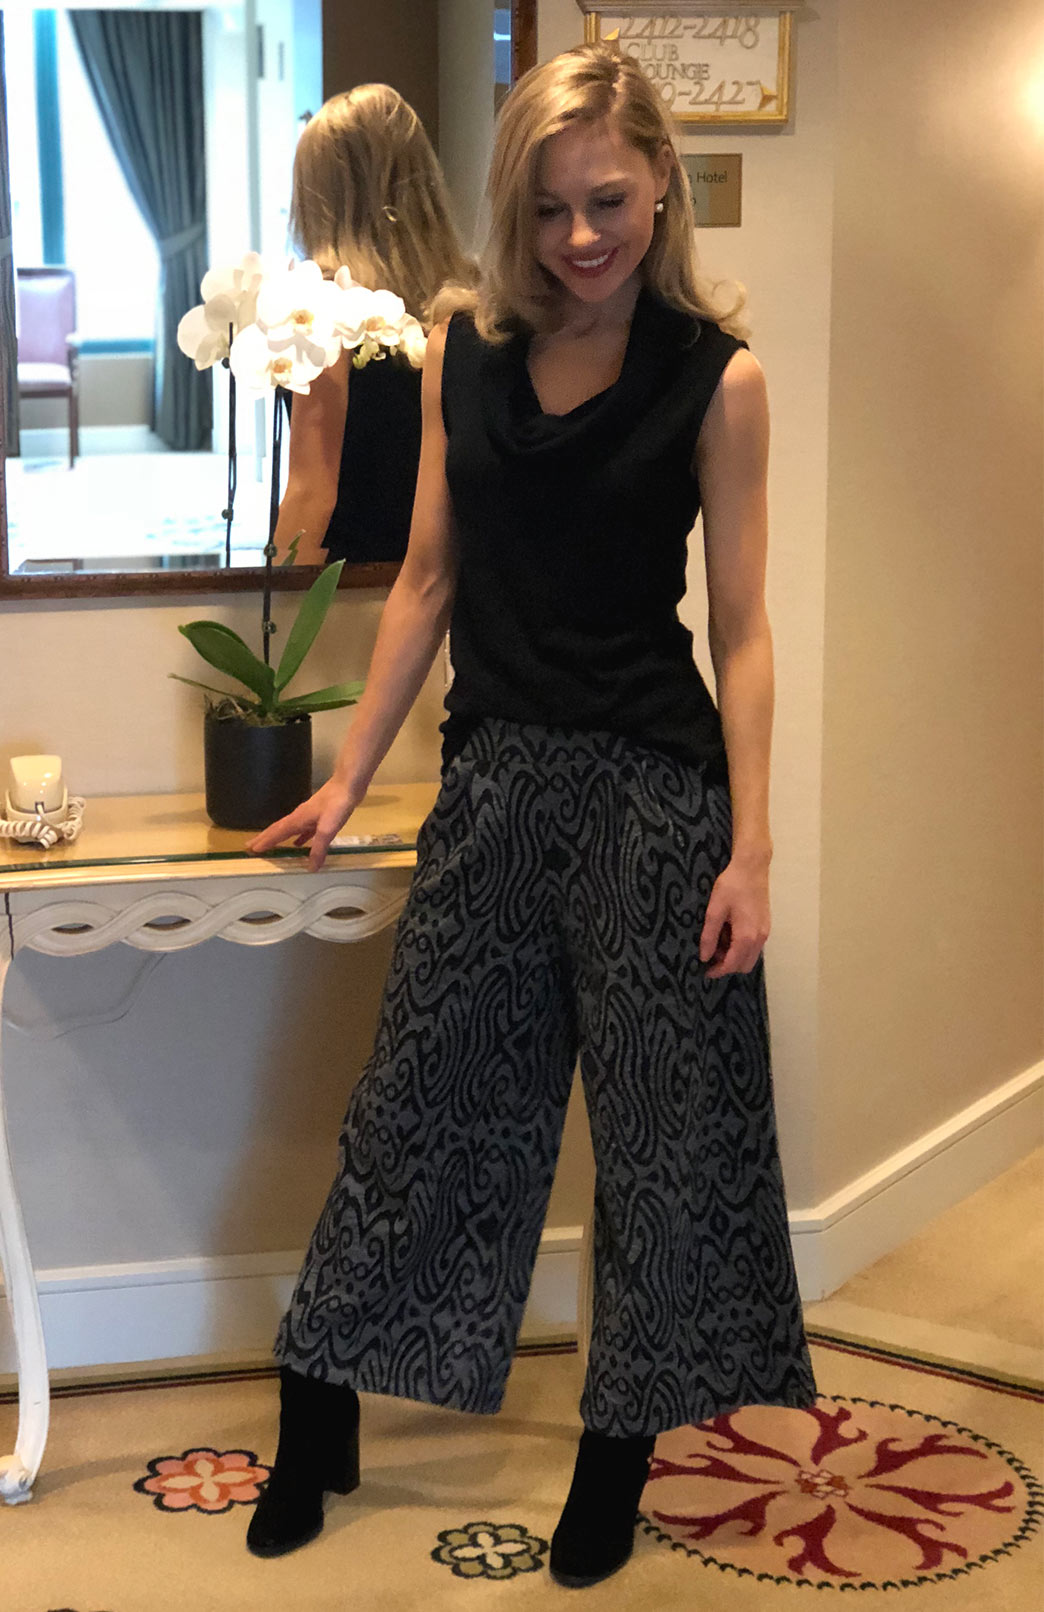 Wide Leg Crop Pant - Patterned - Women's wool crop pants with wide legs and wide waistband - Smitten Merino Tasmania Australia